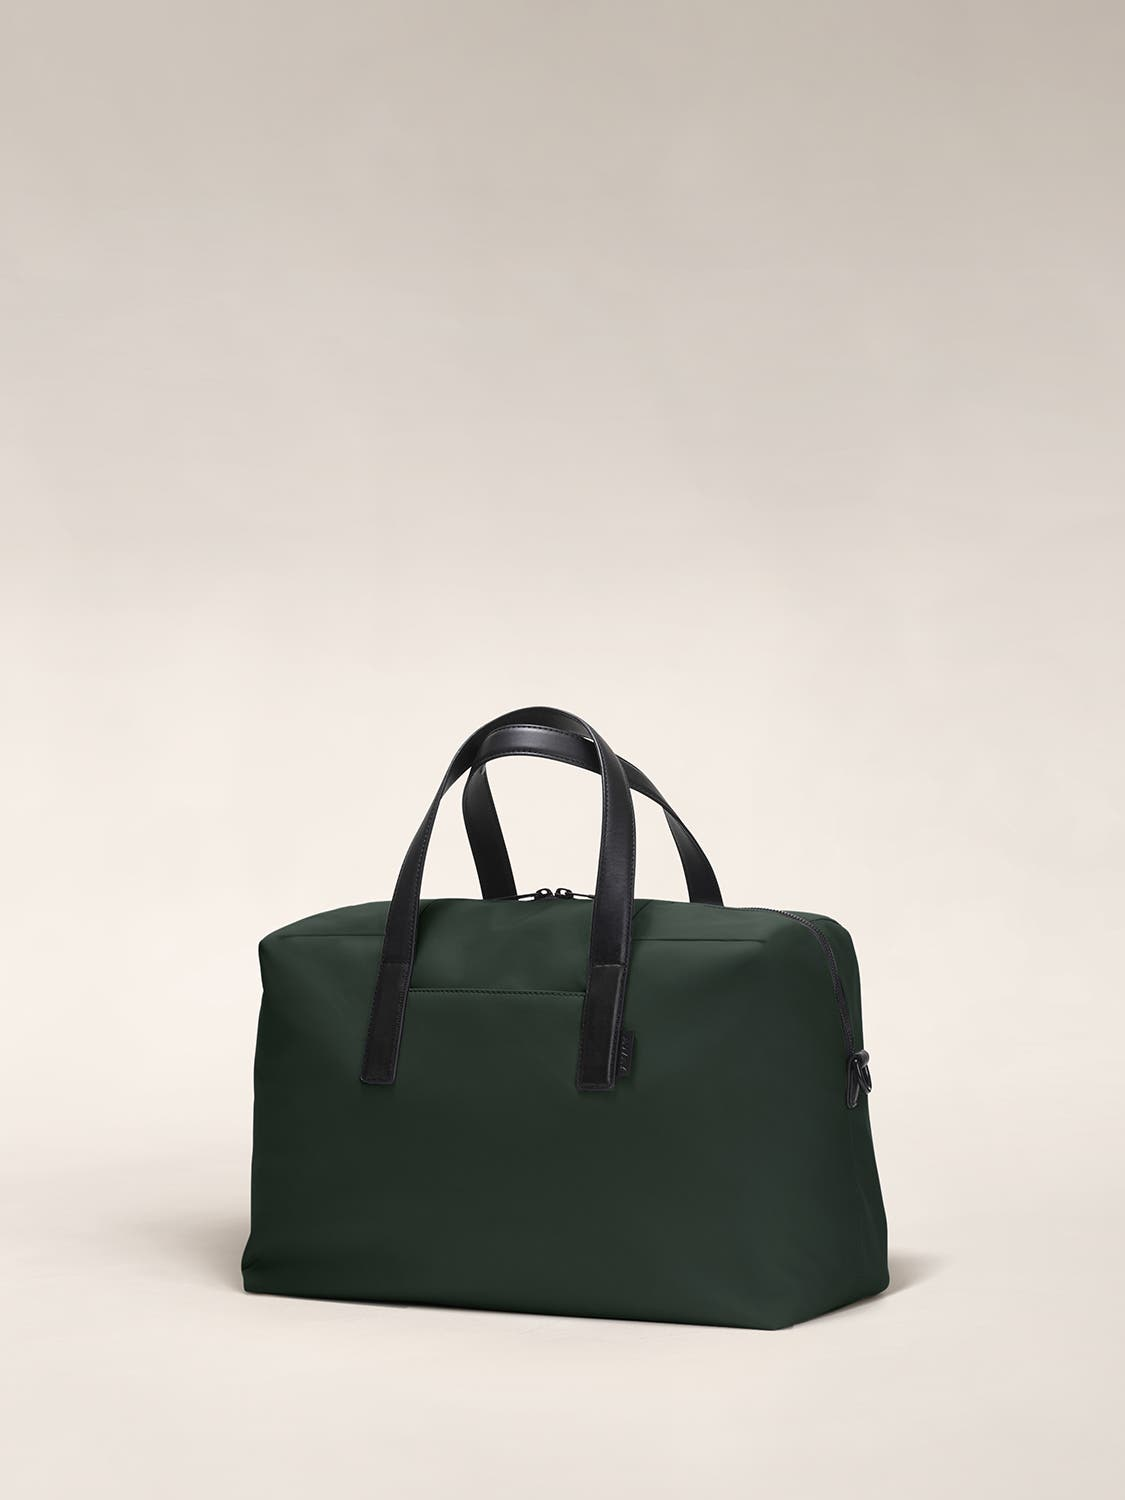 Angled view of a green duffle bag with crossed straps.